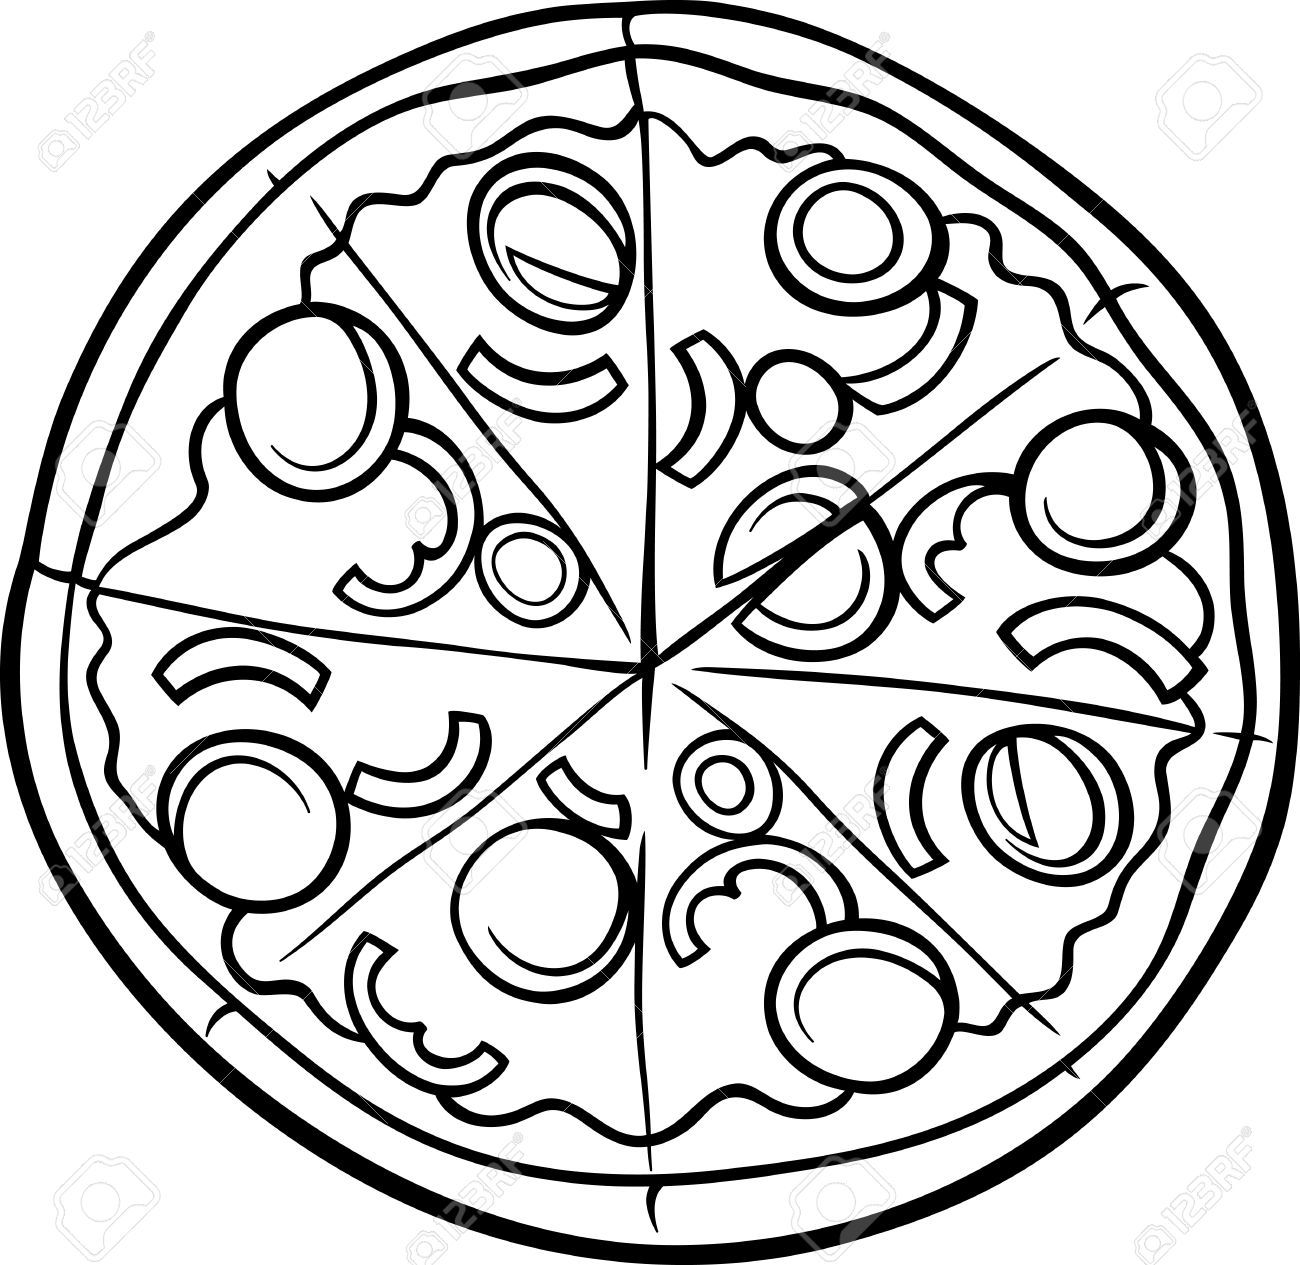 Free Clip Art Of Pizza Clipart Black And White 453 Best